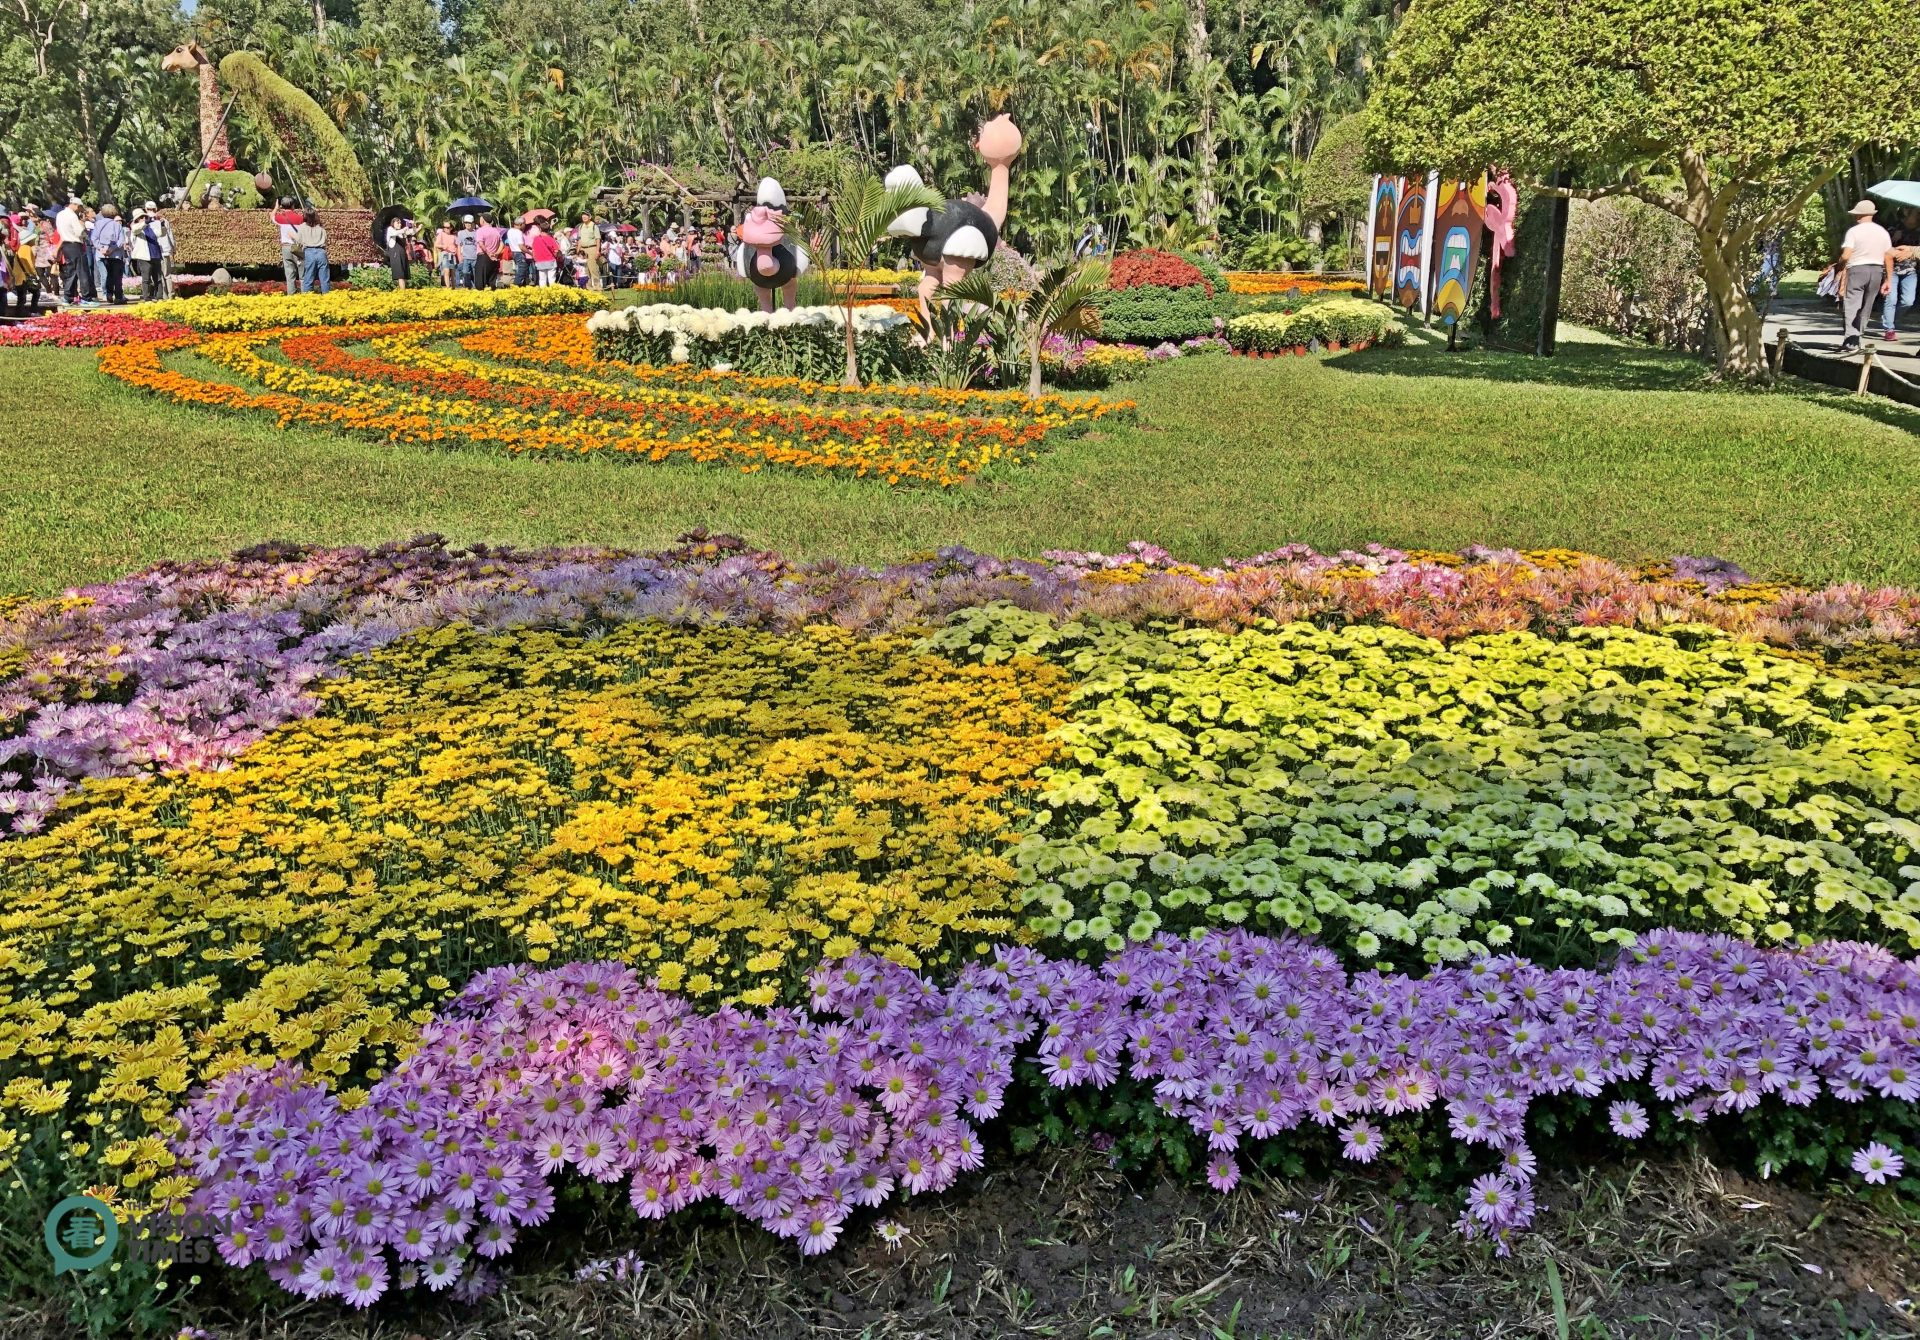 There will be more than 60,000 people visiting this chrysanthemum exhibition this year. (Image: Julia Fu / Vision Times)